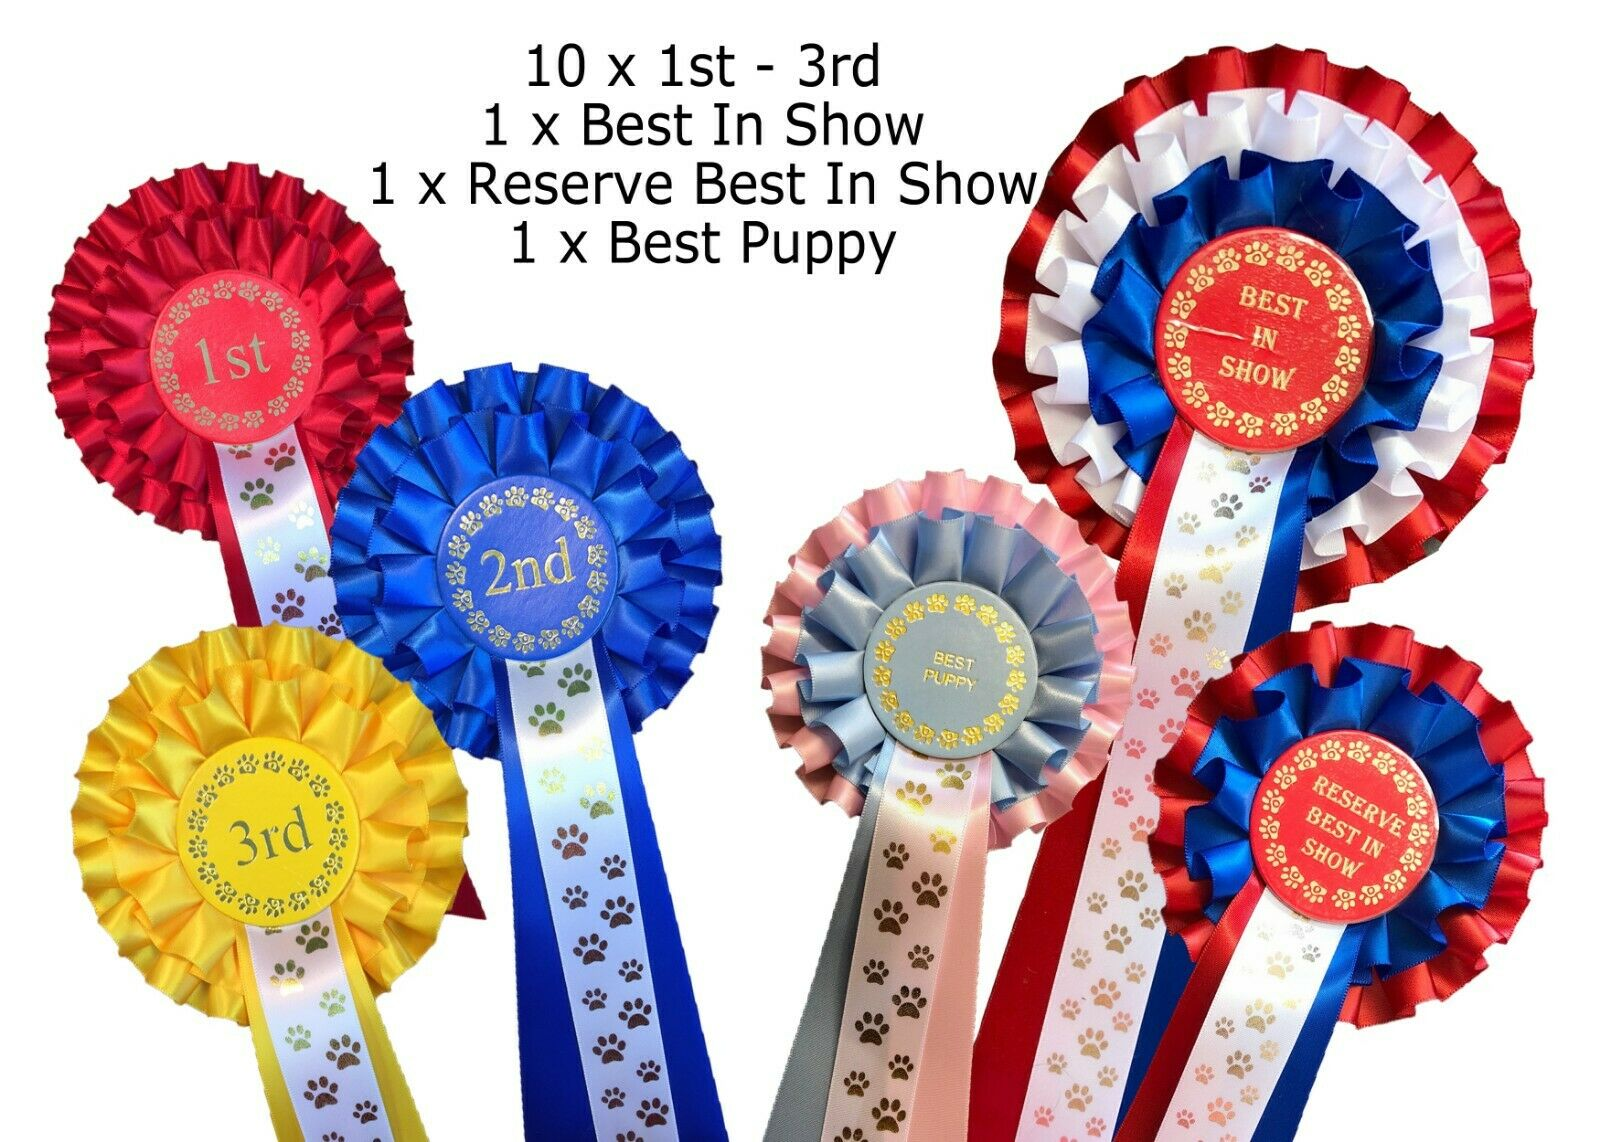 10 sets 1st-3rd 2 Tier Dog pinkttes Best In Show Res Best In Show Best Puppy